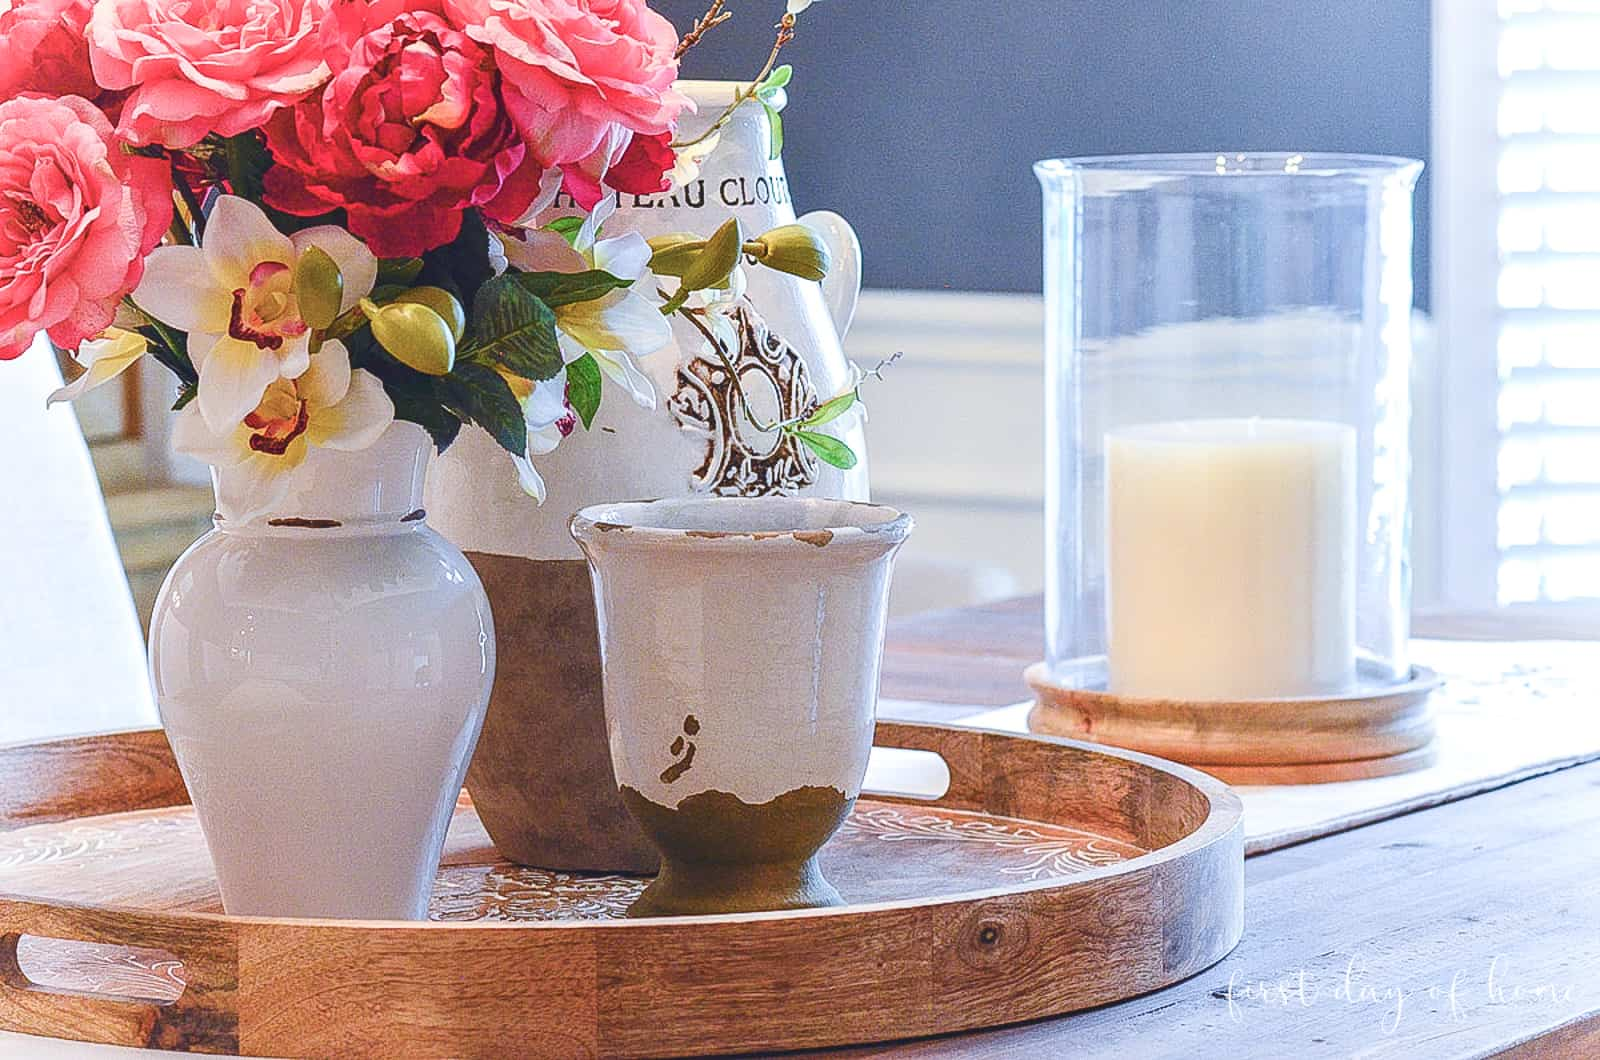 Trio of ceramic pottery on wooden tray in center of dining room table